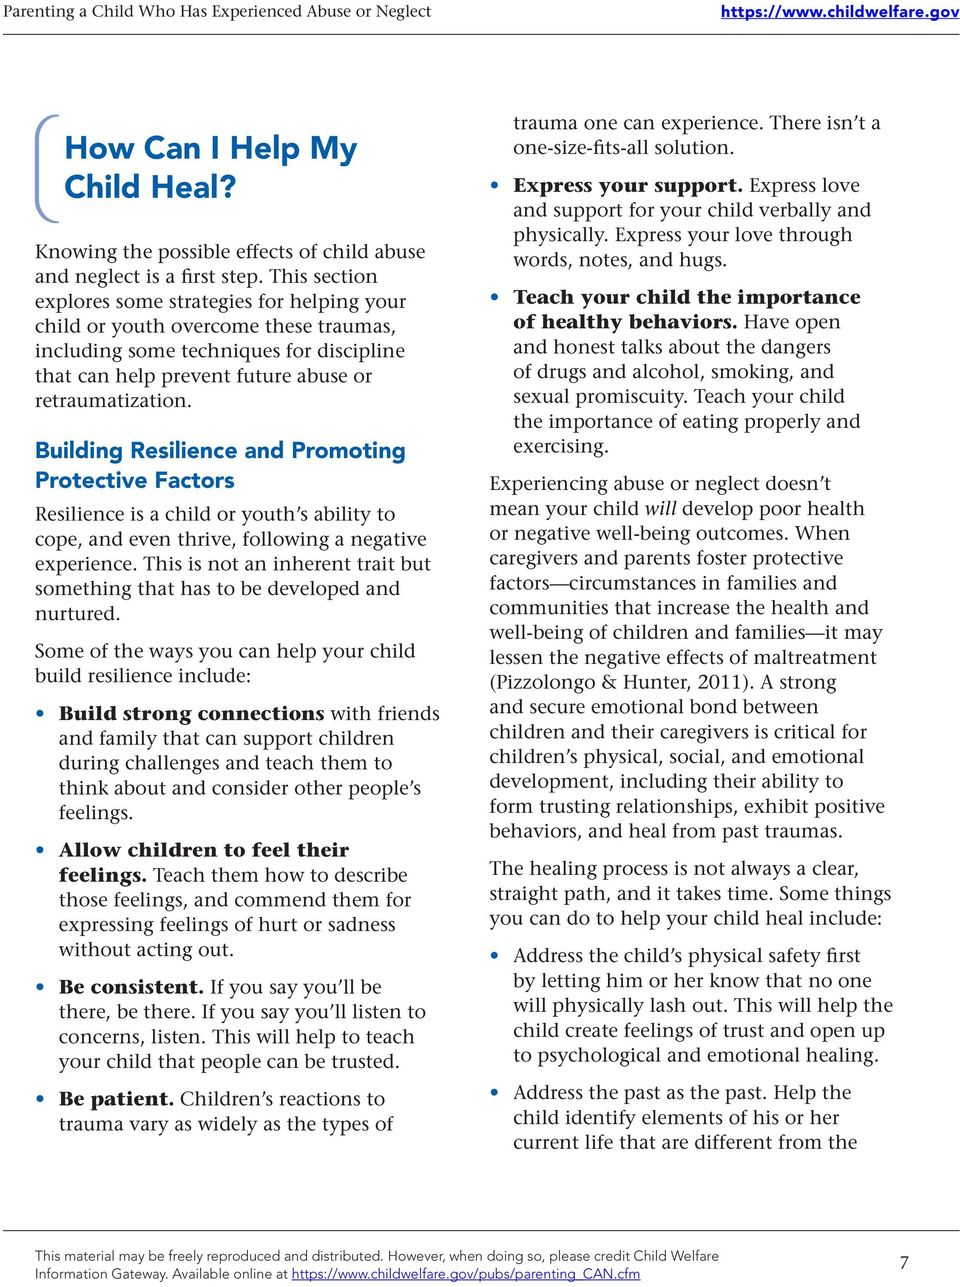 Building Resilience and Promoting Protective Factors Resilience is a child or youth s ability to cope, and even thrive, following a negative experience.